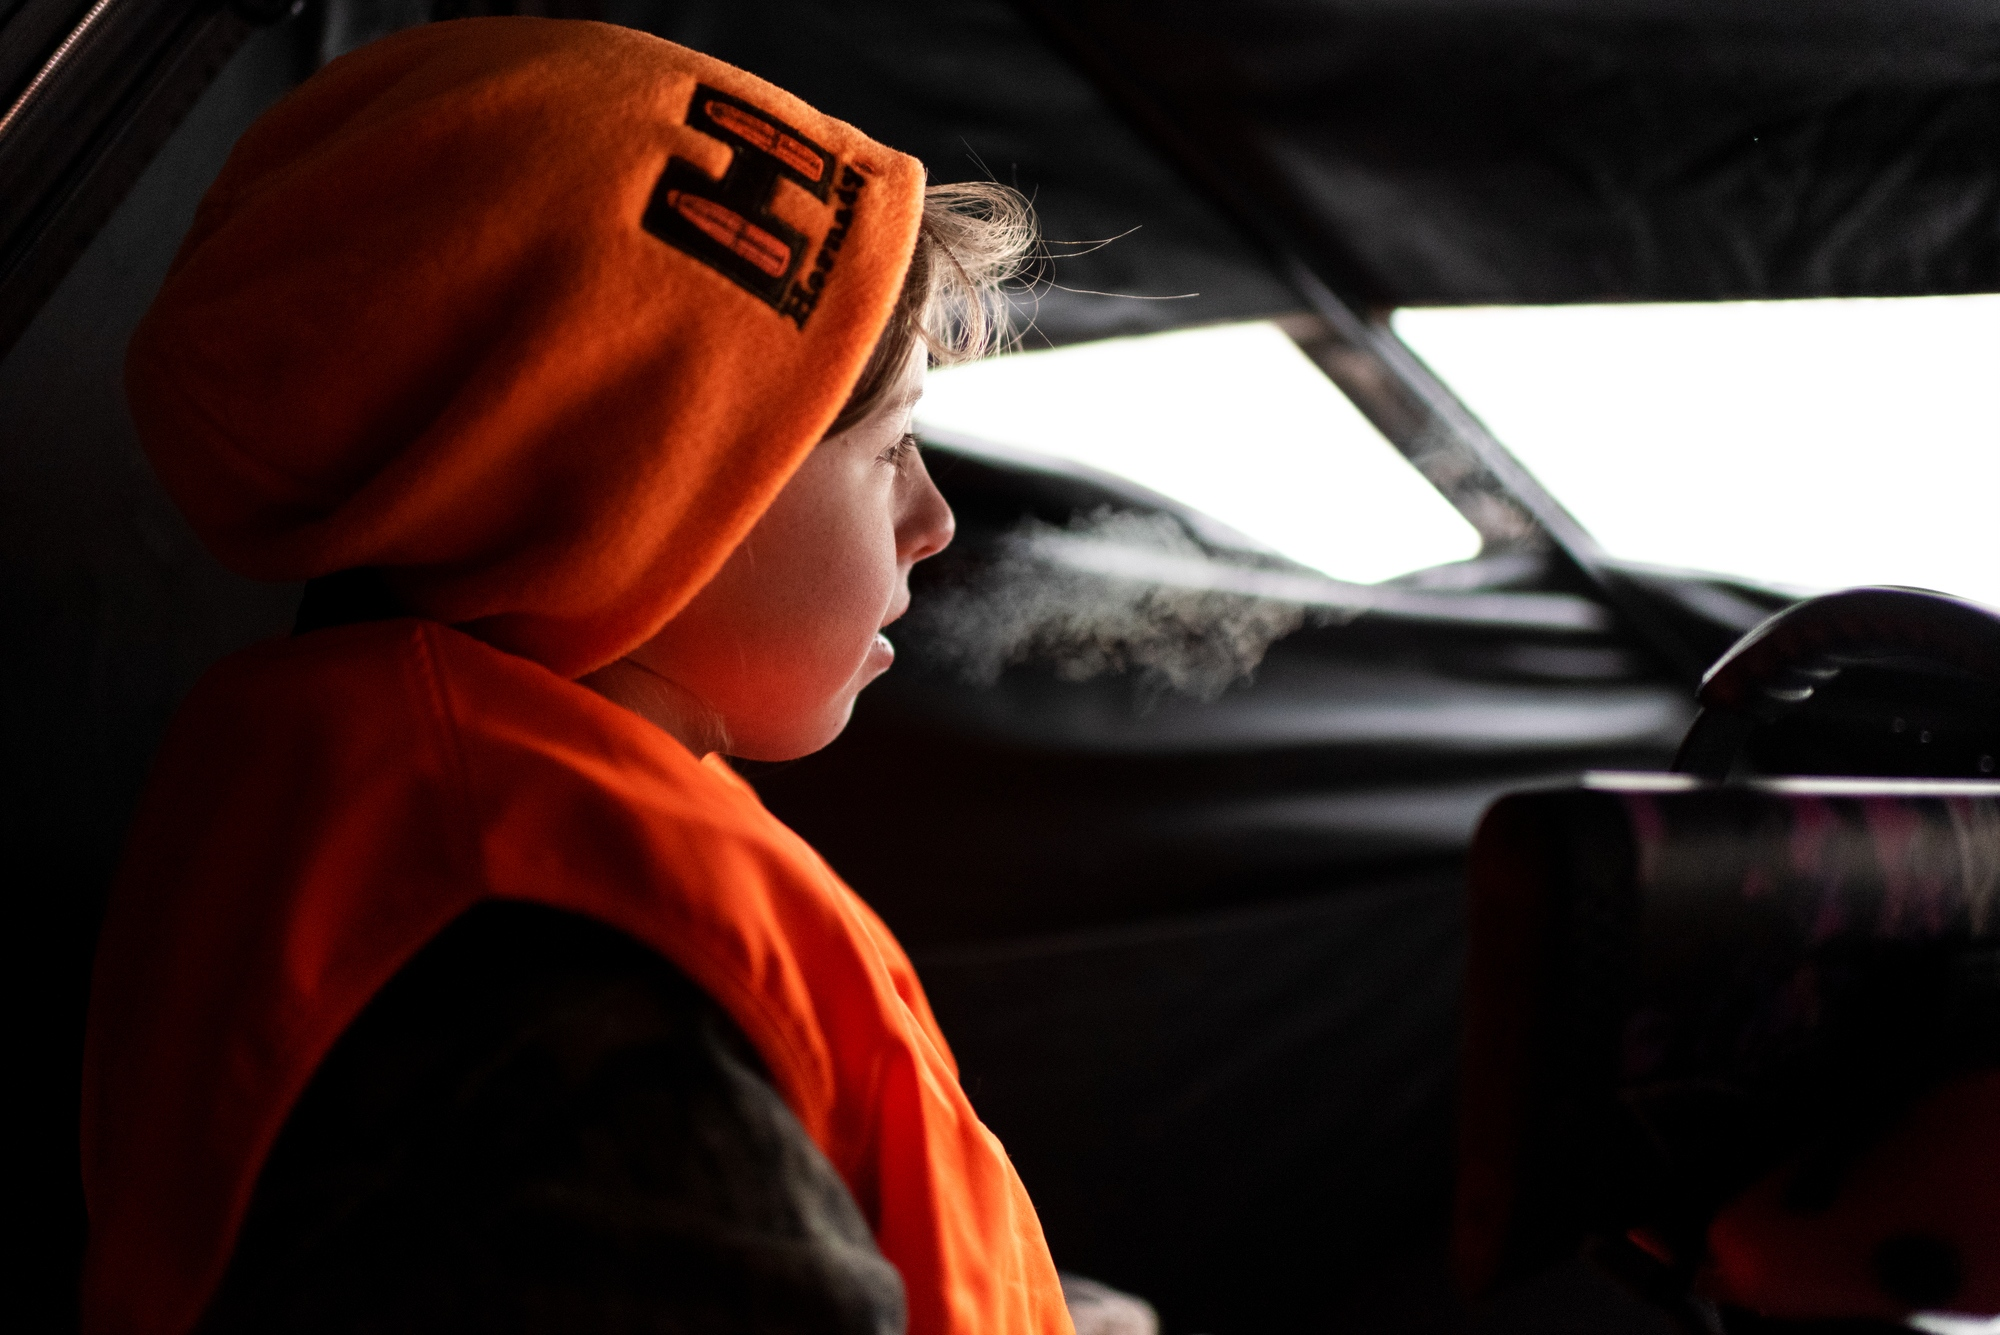 Callie Jennings watches for a deer from inside her family's blind on November 12, 2018. Callie said her dad has passed on the importance of patience, quiet and focus. She has taken some of those lessons with her into her every day life outside of hunting.